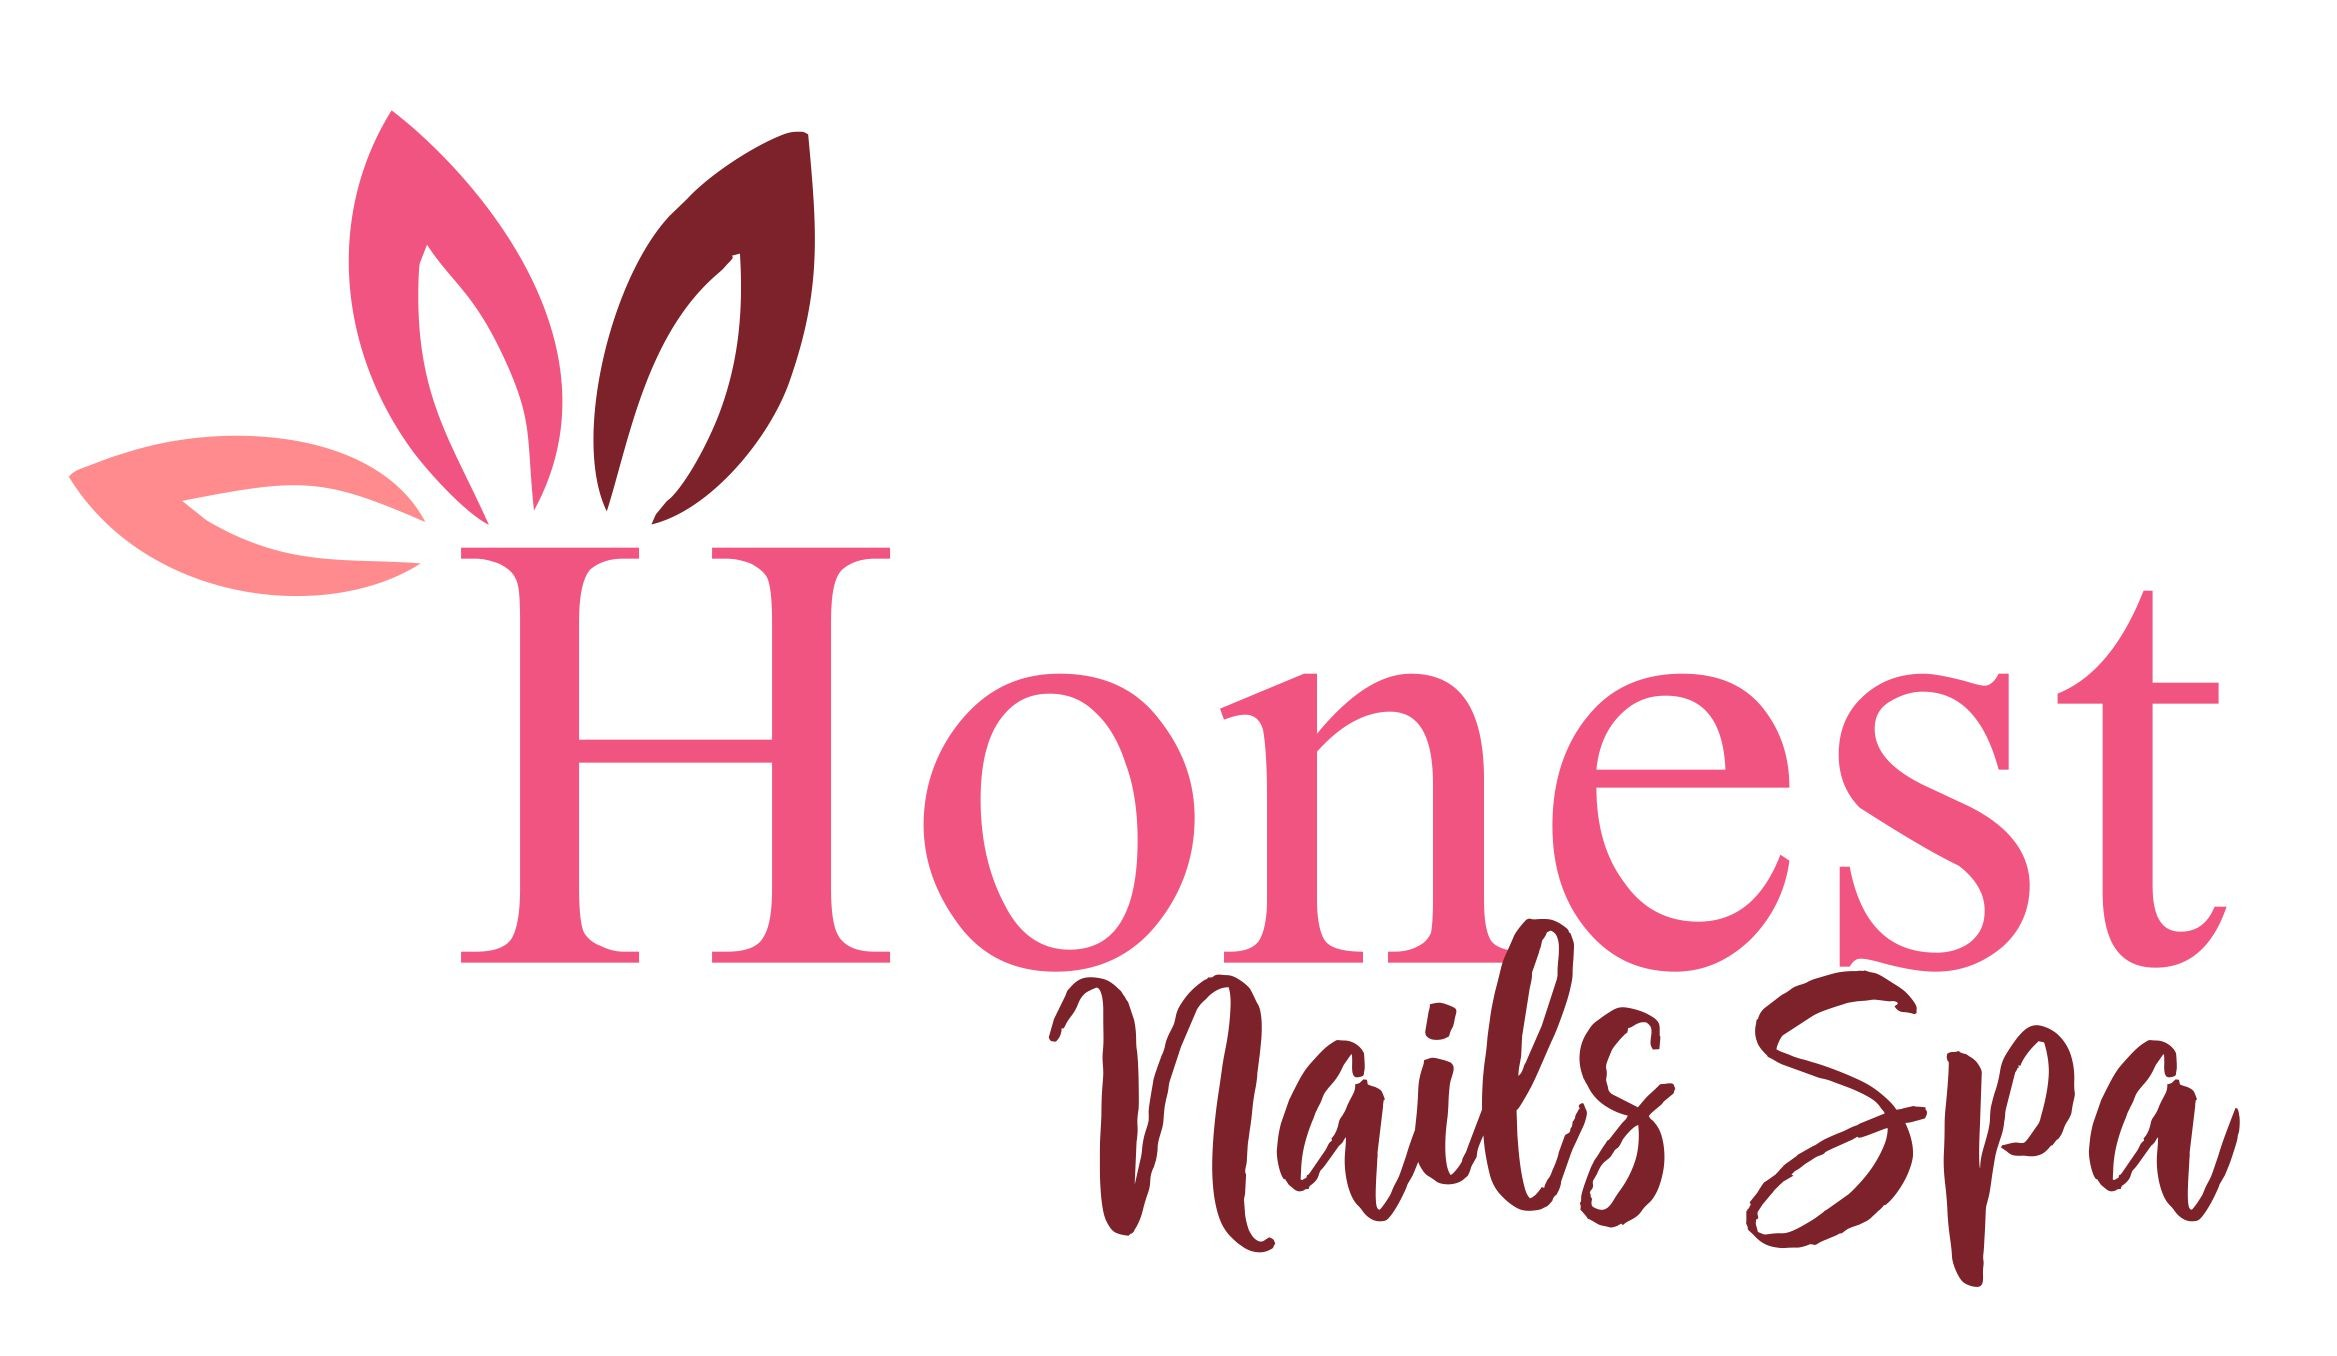 honest nail spa- debbie